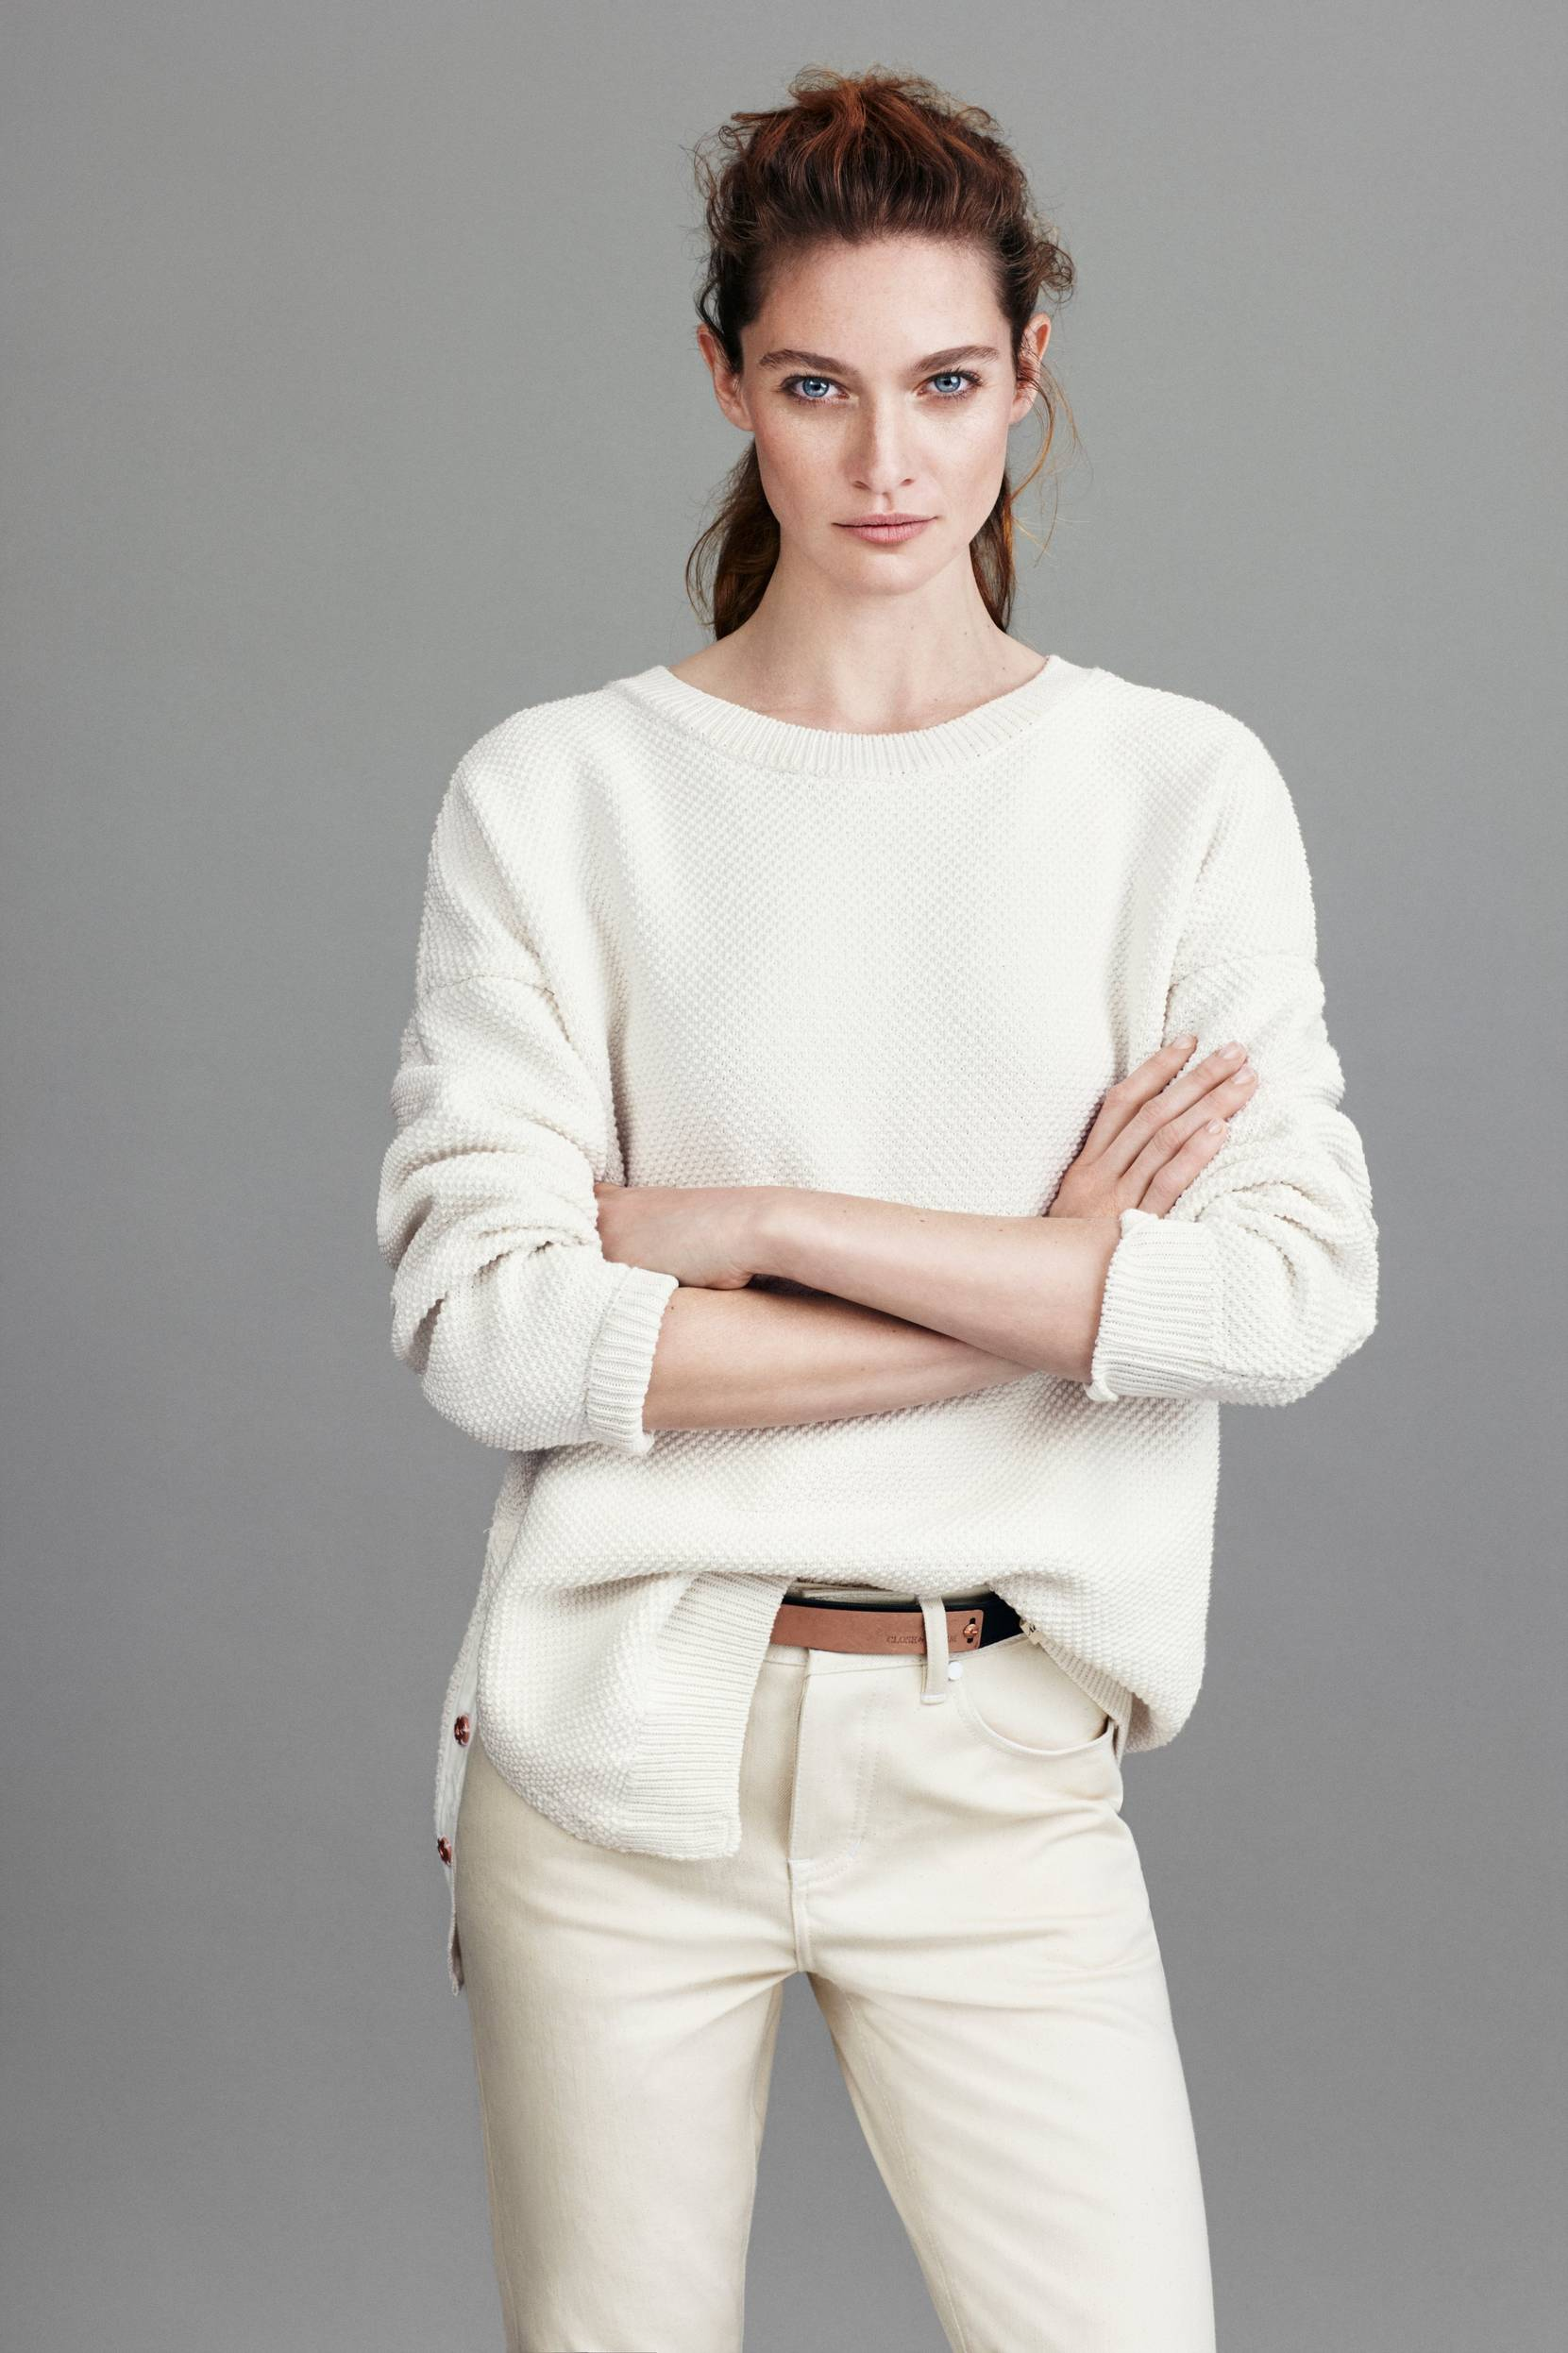 The Heavy Knitted Sweater